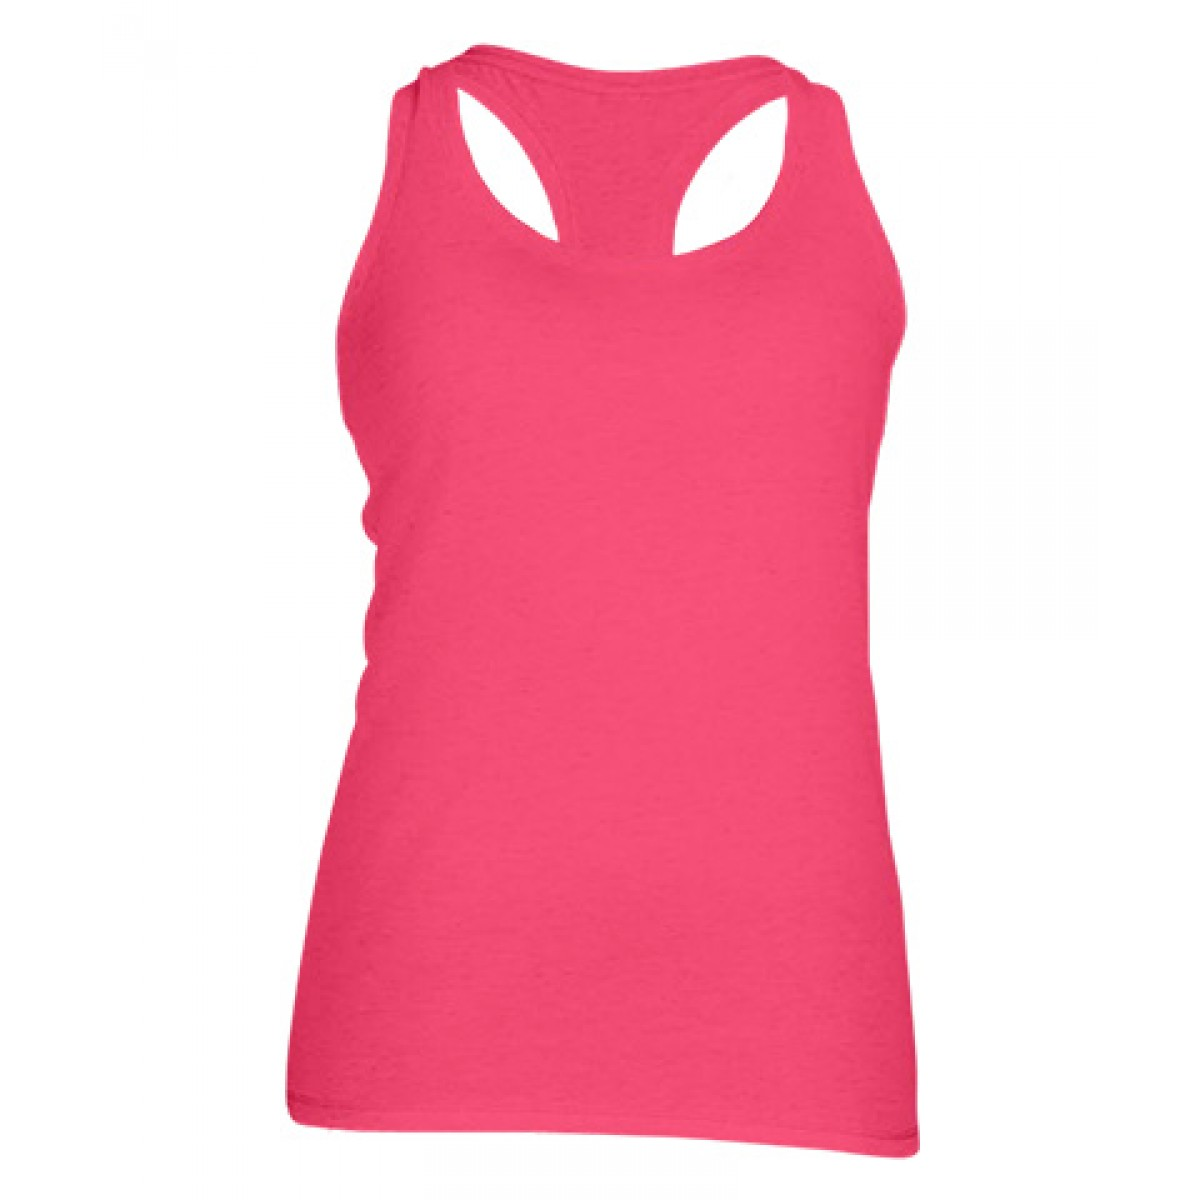 Ladies' Performance Racerback Tank-Safety Pink-XL